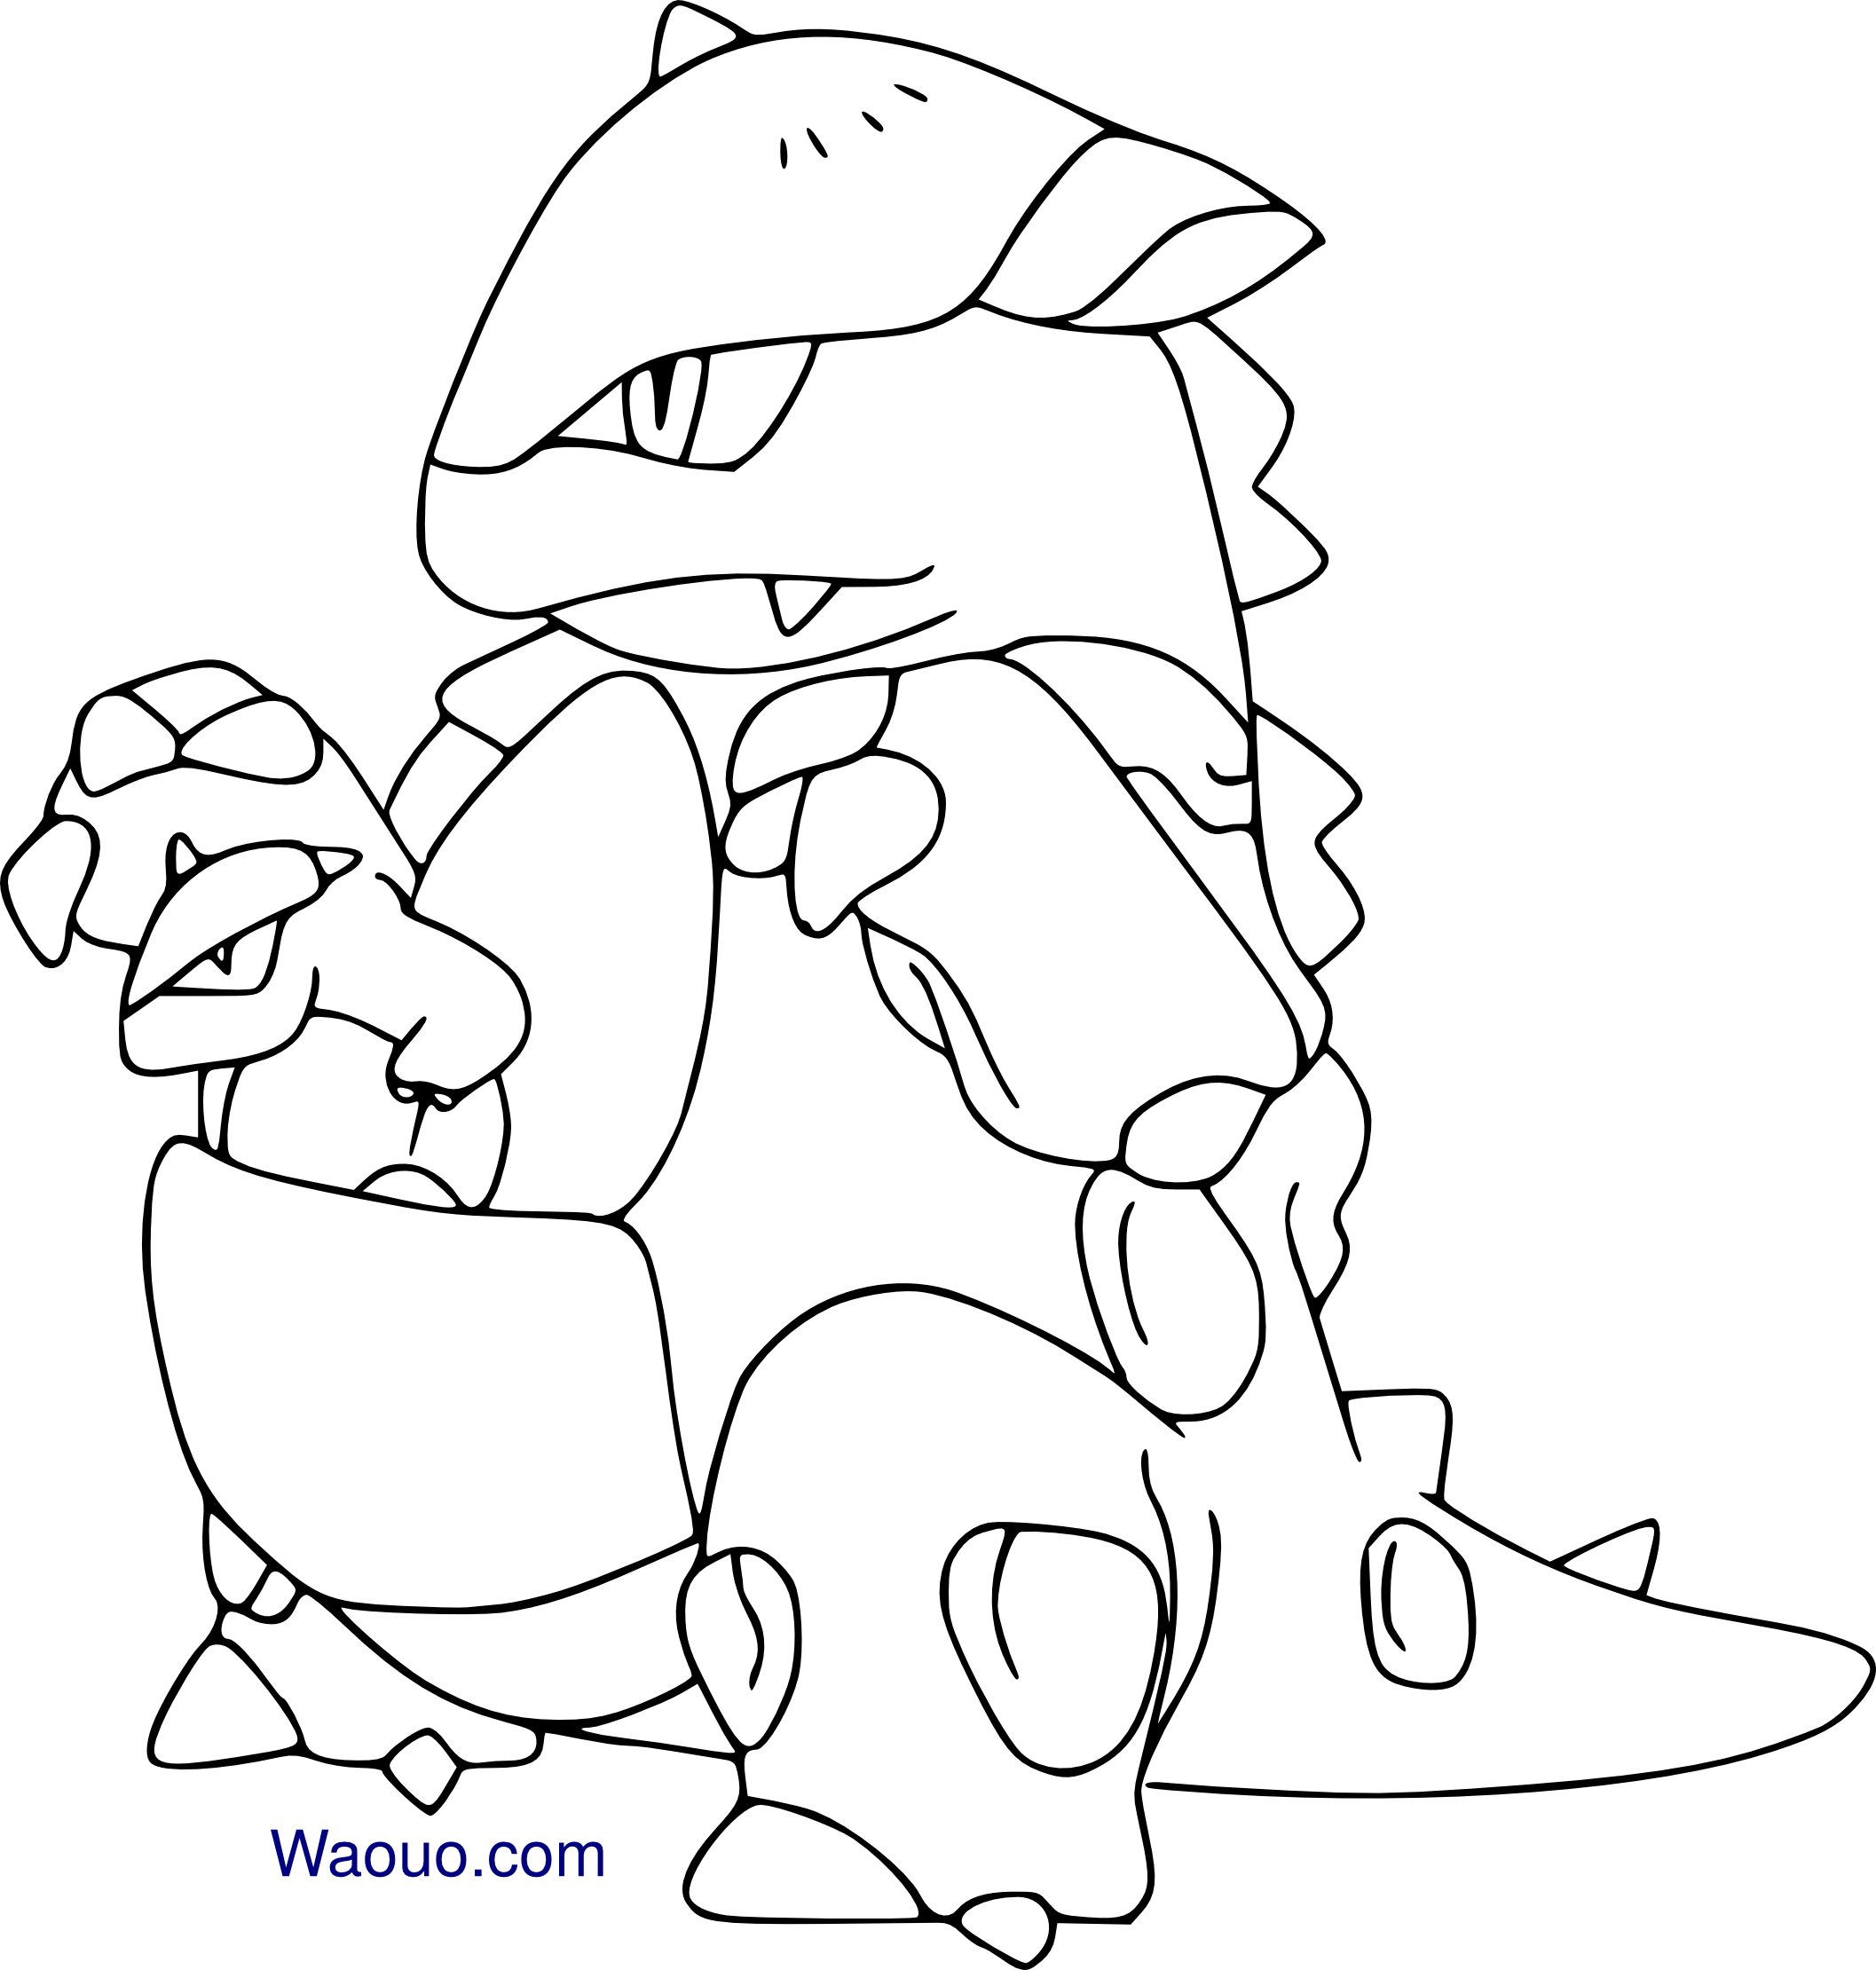 Coloriage m ga kangourex pokemon imprimer sur coloriages - Coloriage pokemon dracaufeu ...